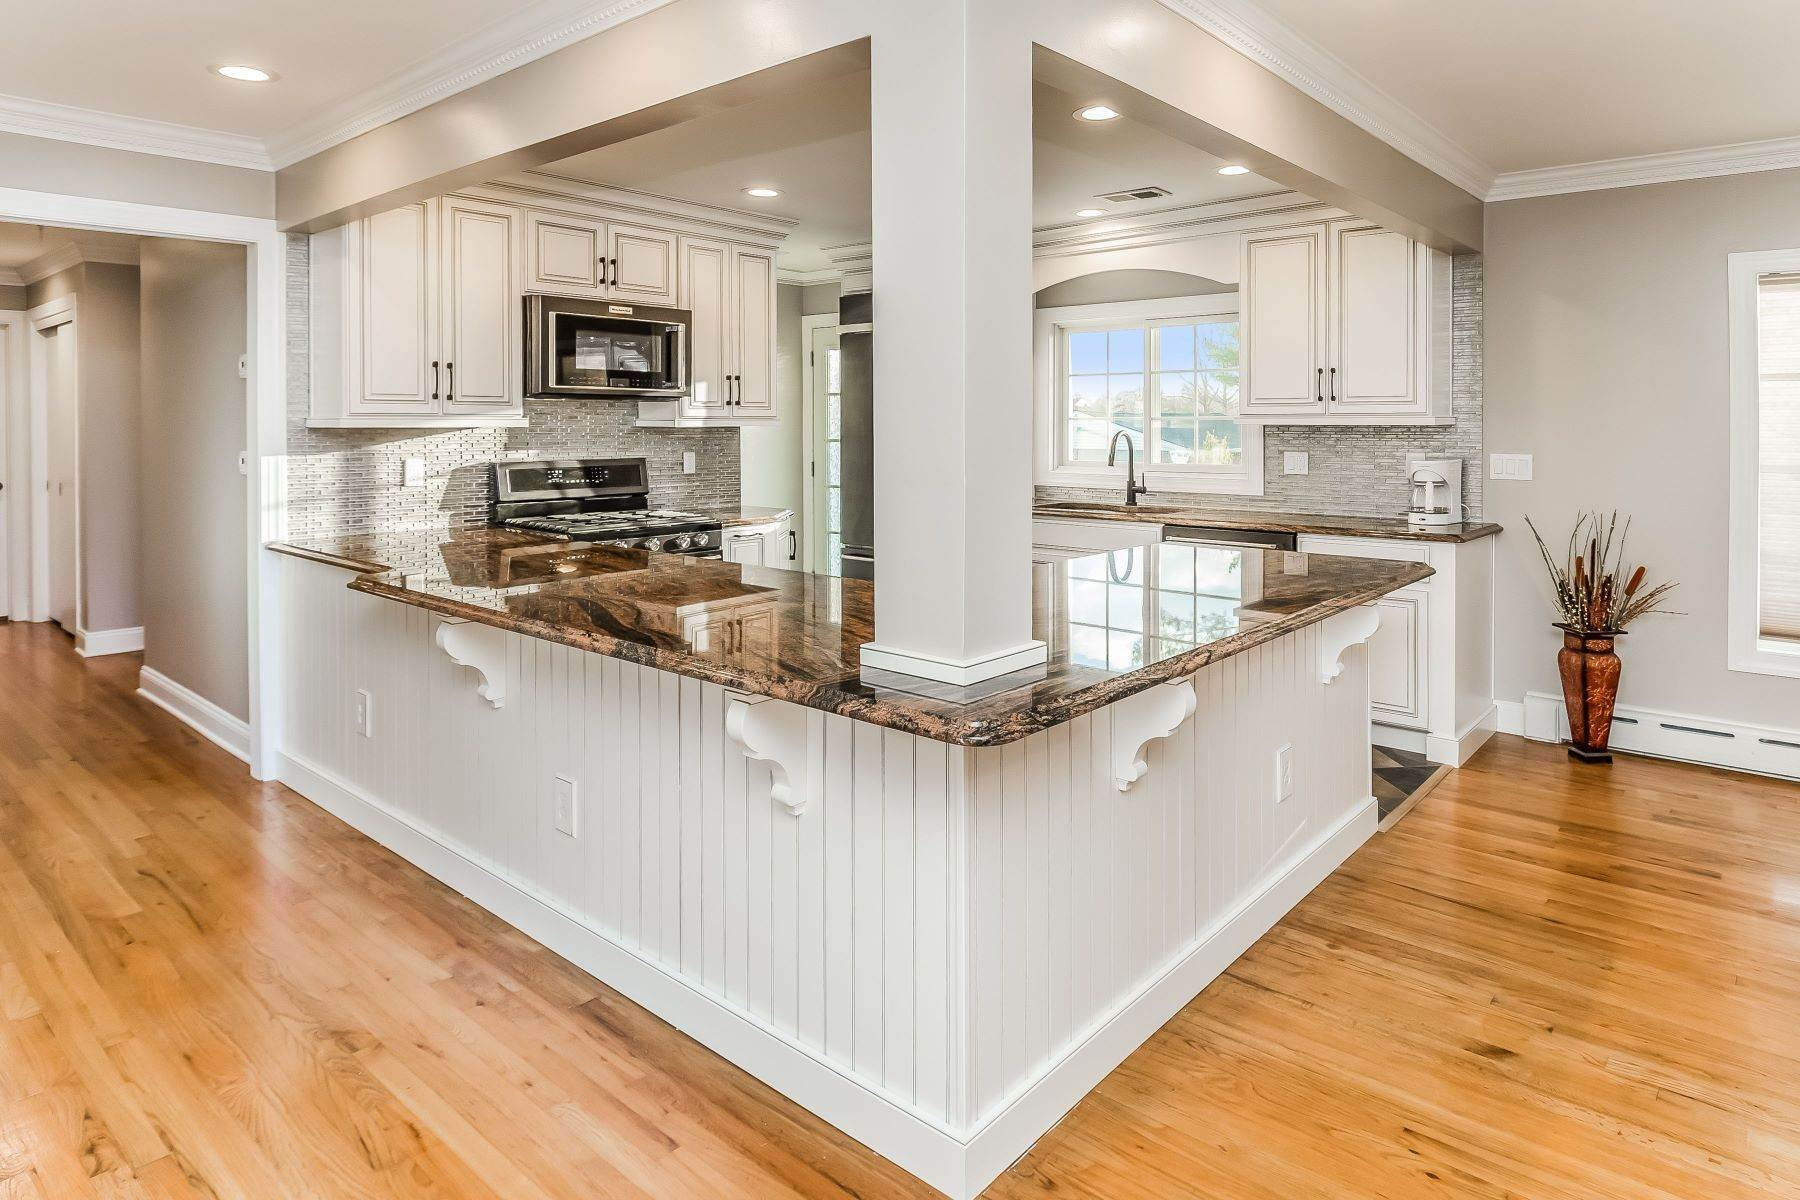 4. Single Family Homes for Sale at Multi-Generational Living At Its Best 427 Belle Mead Griggstown Road, Belle Mead, New Jersey 08502 United States